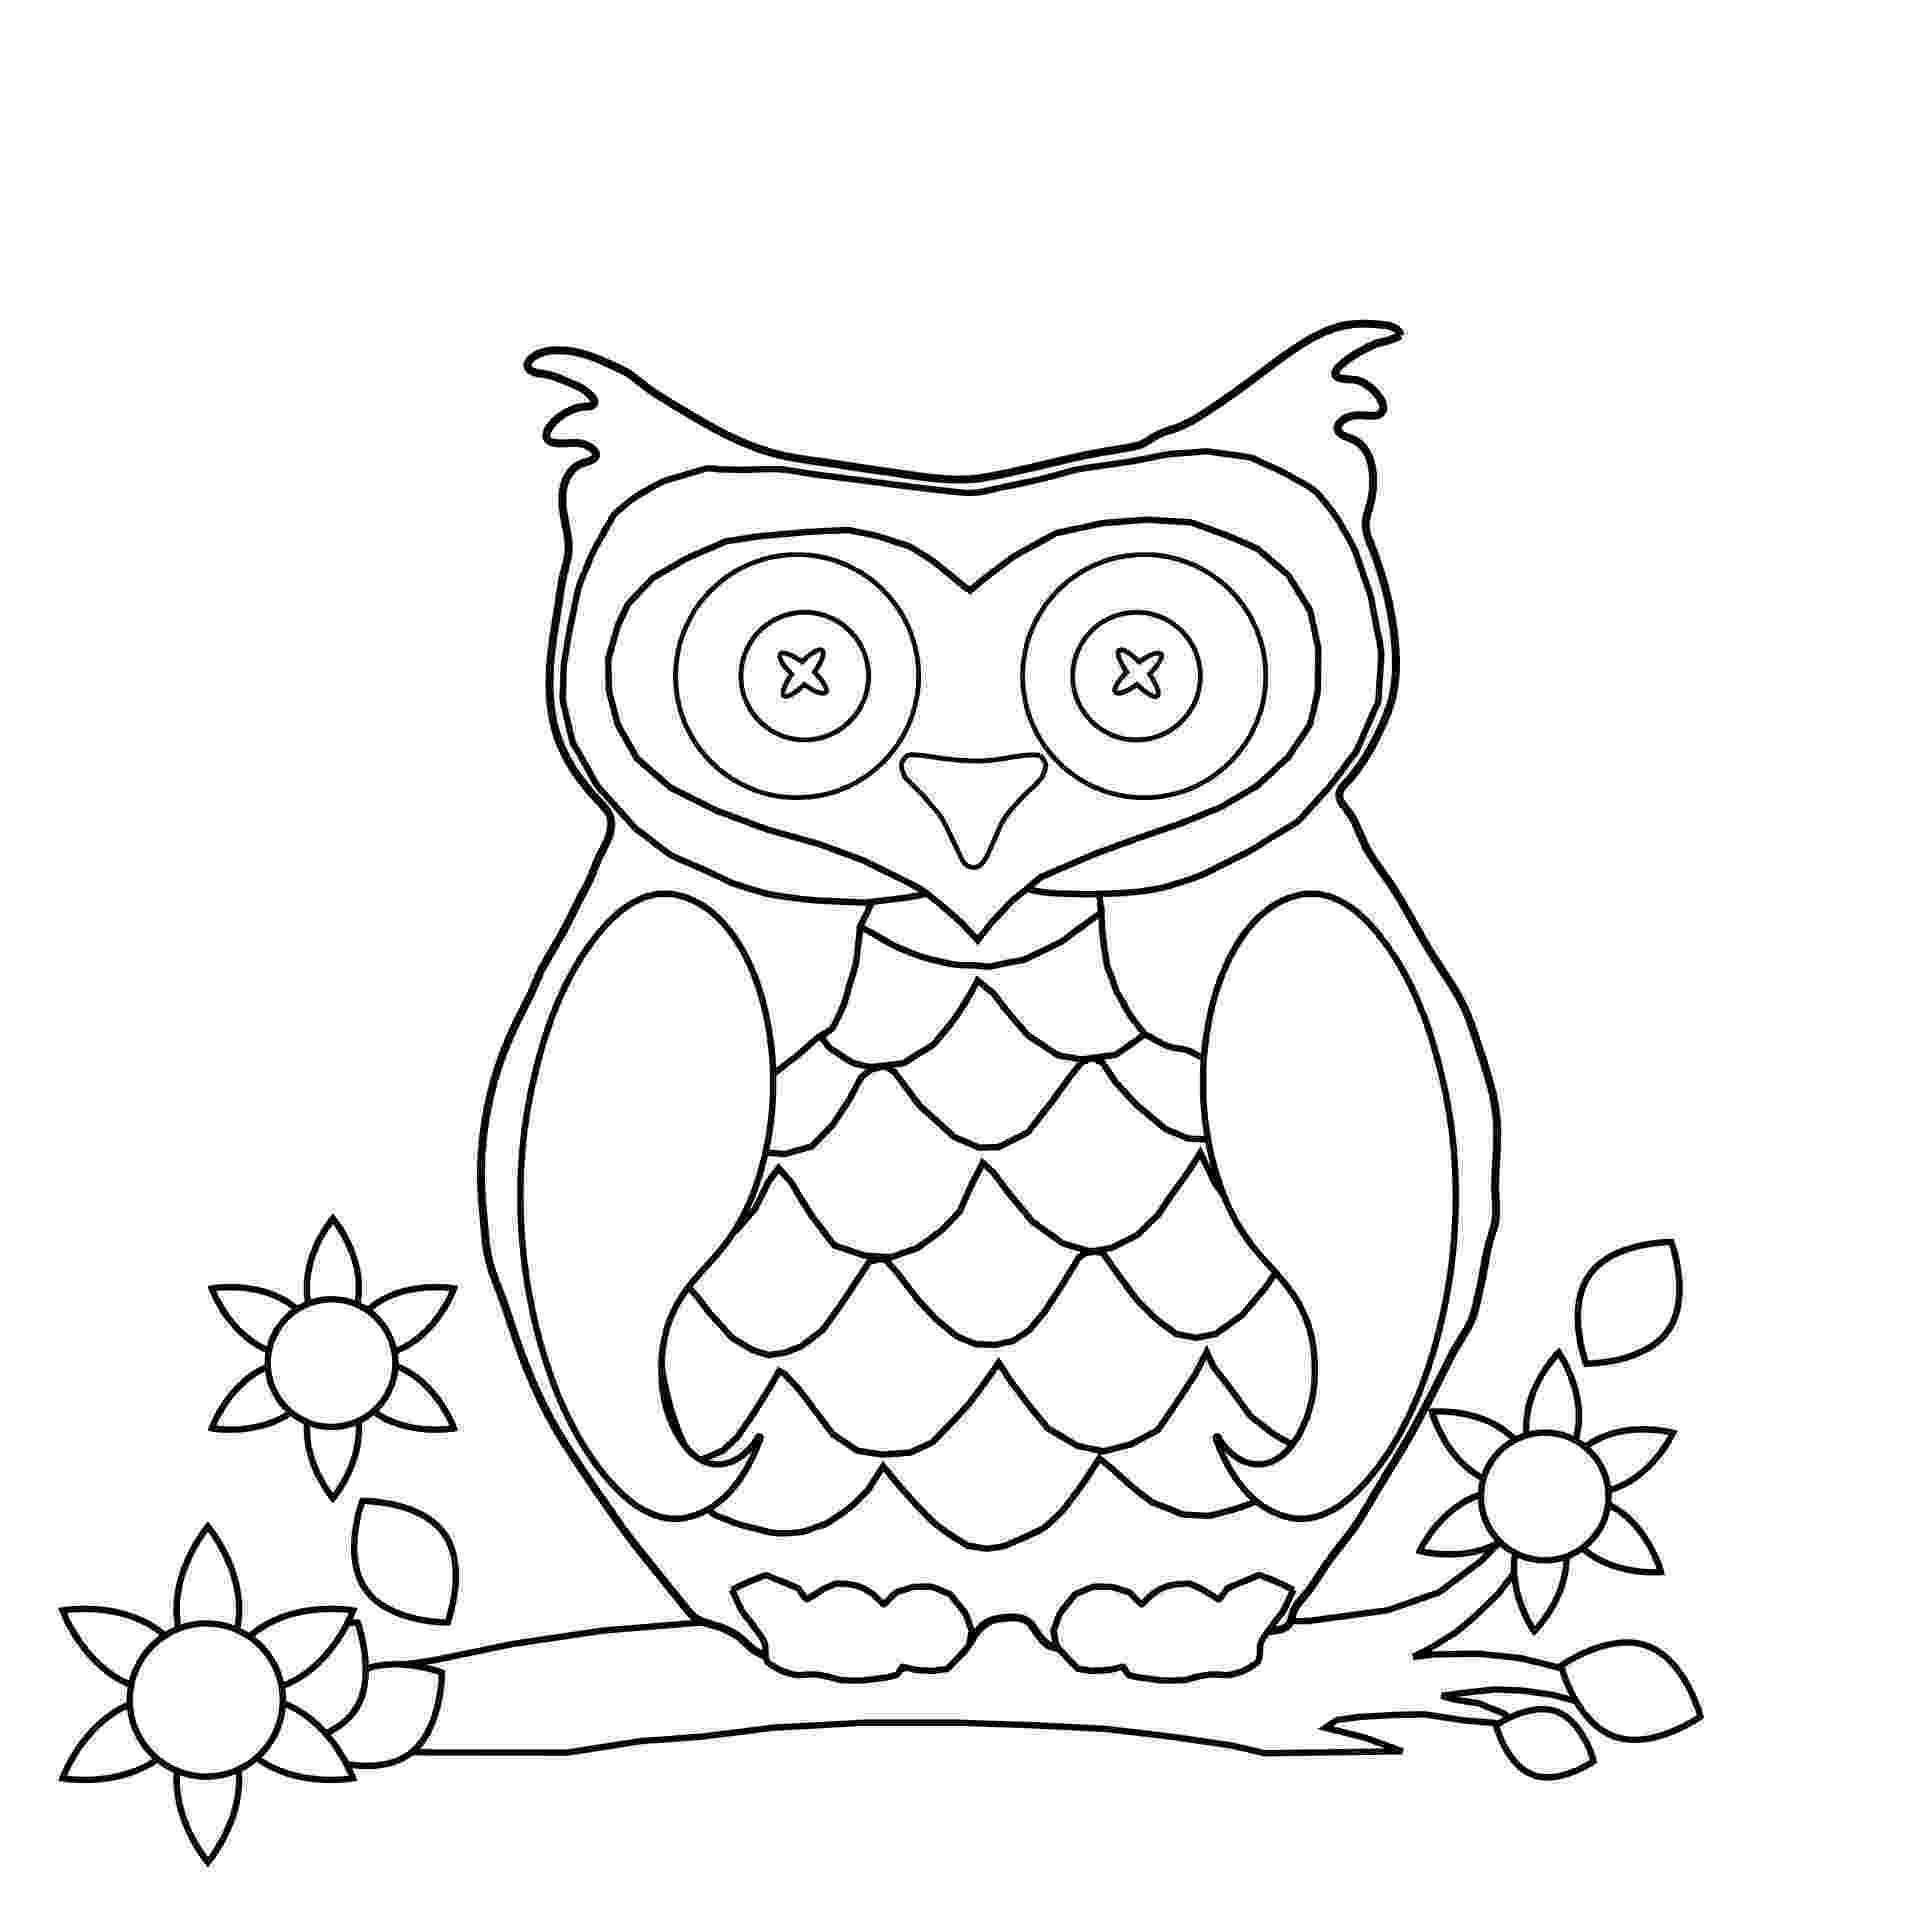 owl coloring pages to print cartoon owl coloring page free printable coloring pages owl coloring pages to print